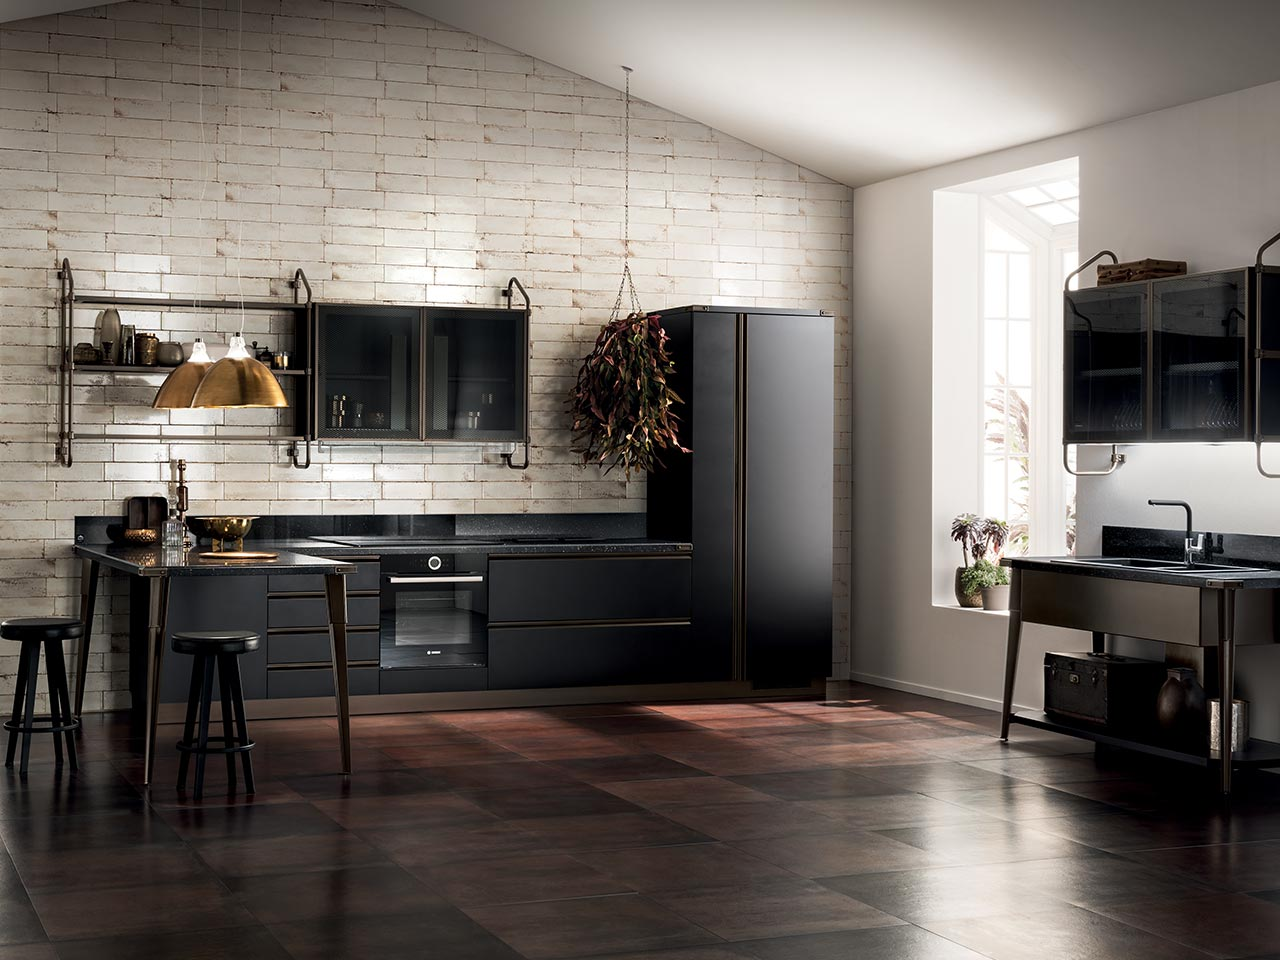 KITCHEN SCAVOLINI